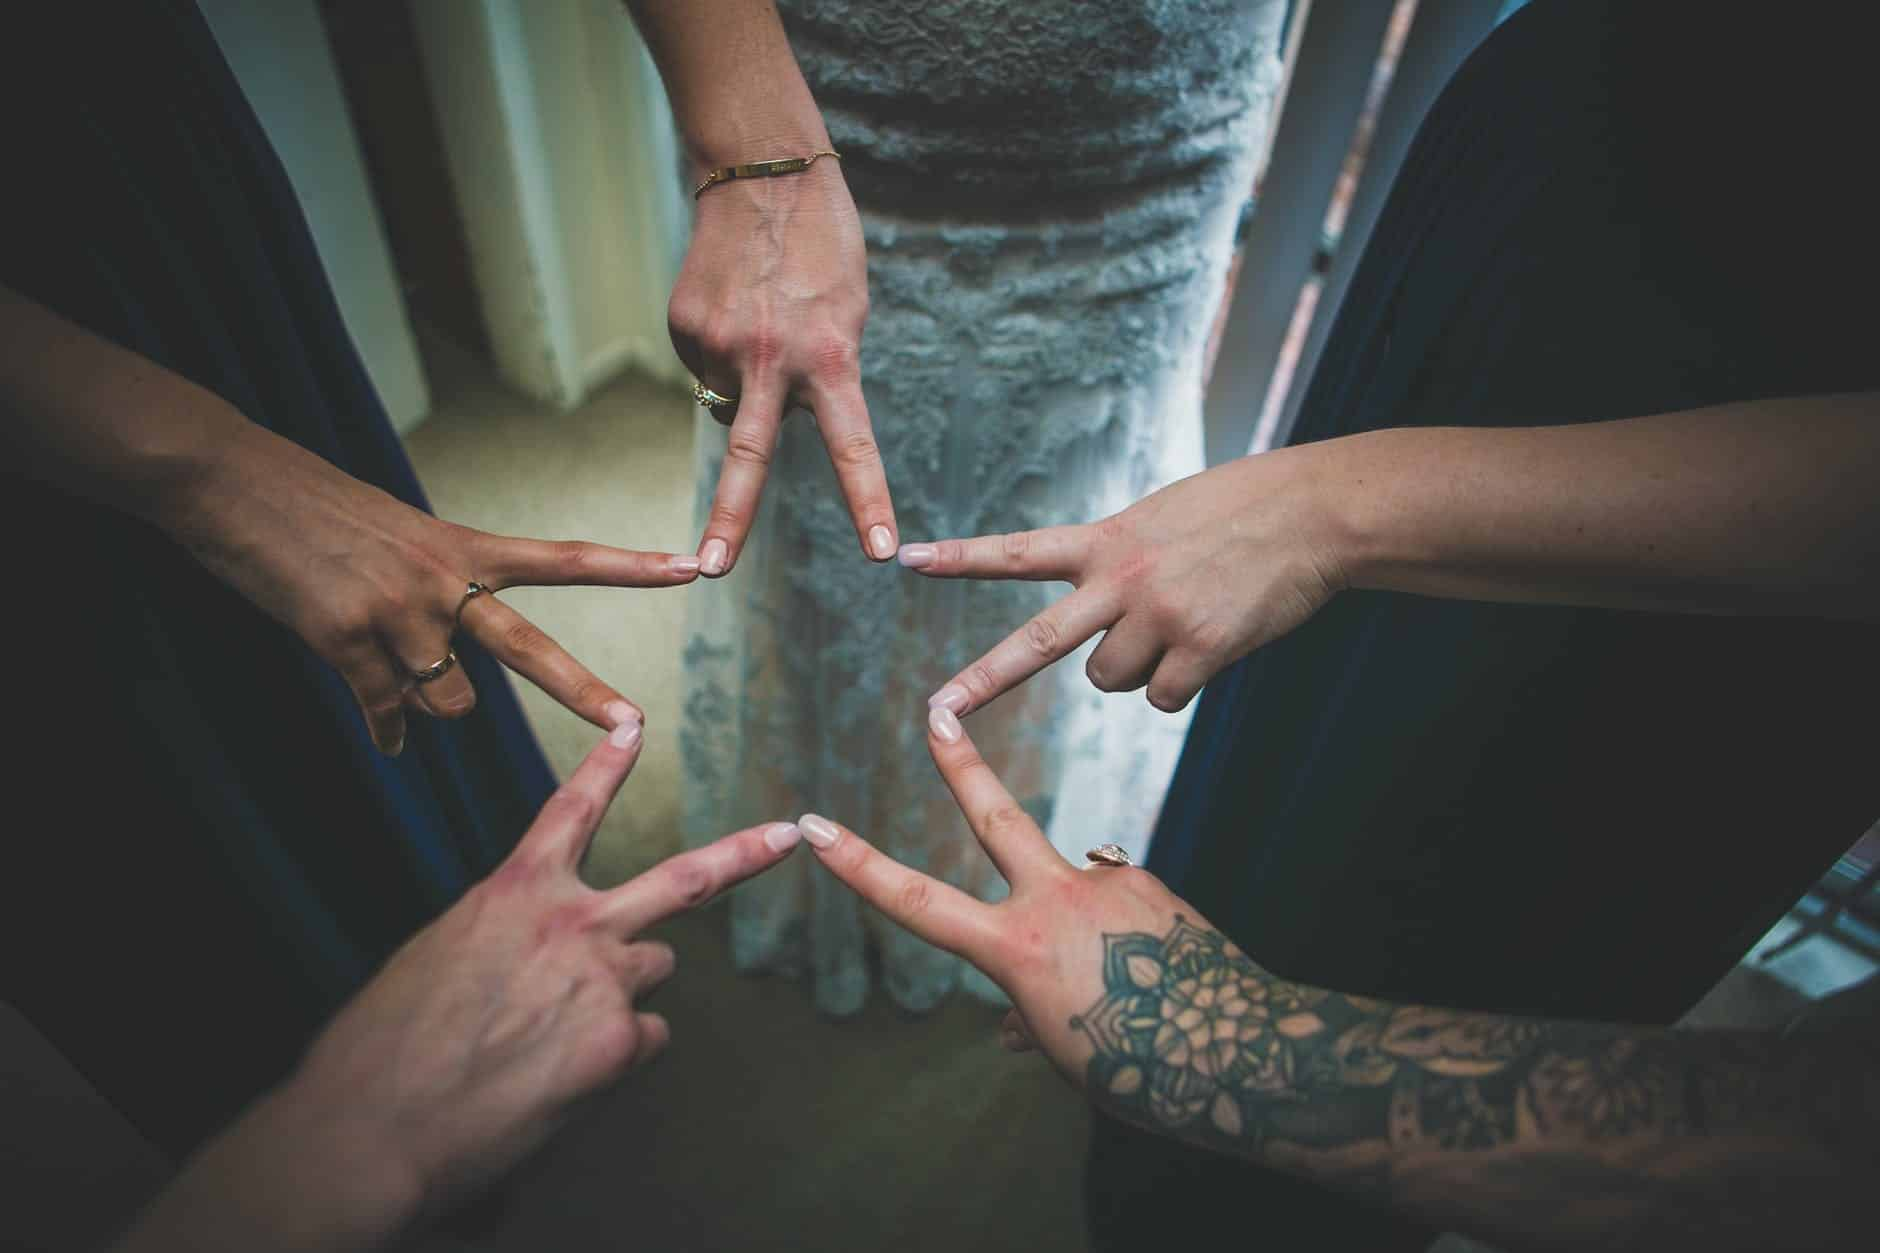 anonymous bride and bridesmaids showing v sign on wedding day